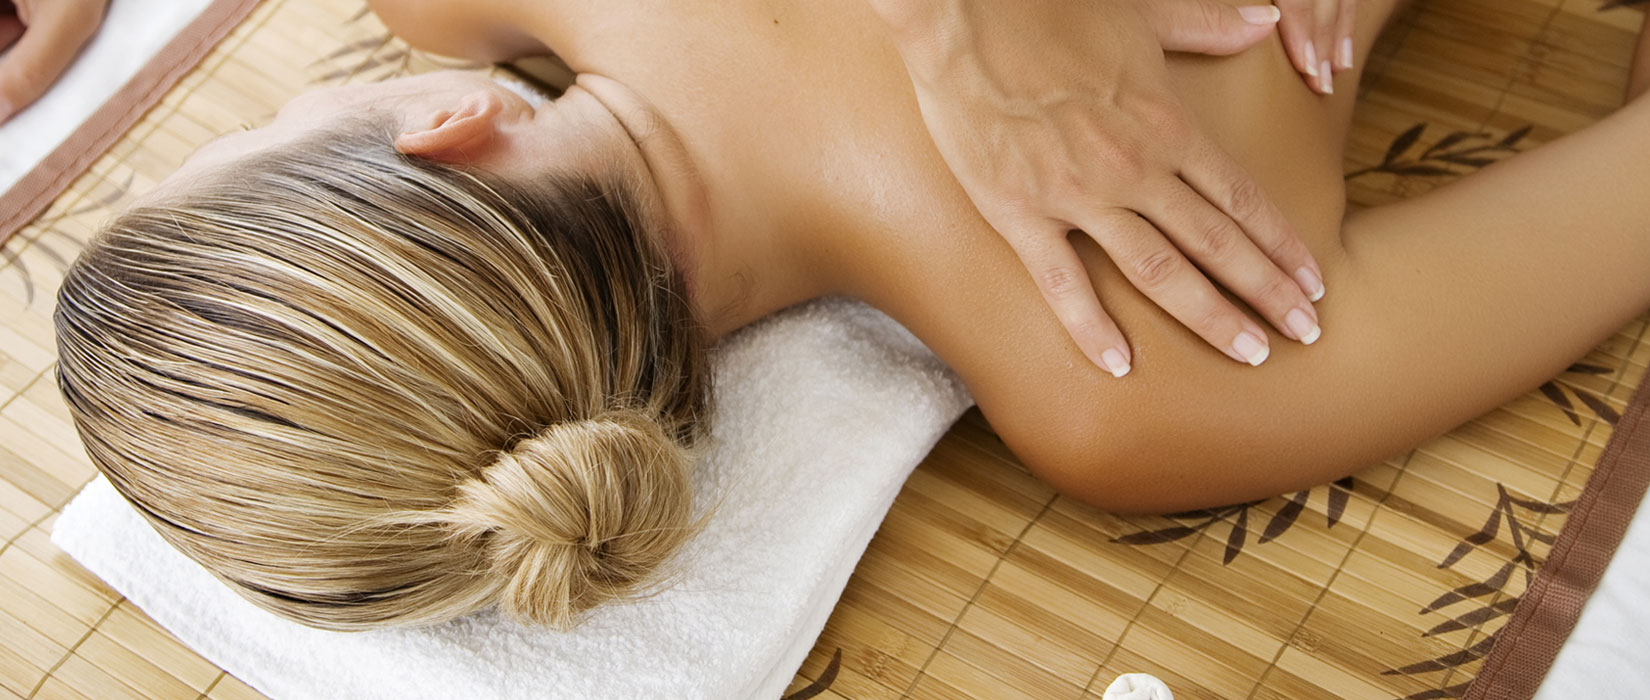 massage therapy puyallup washington